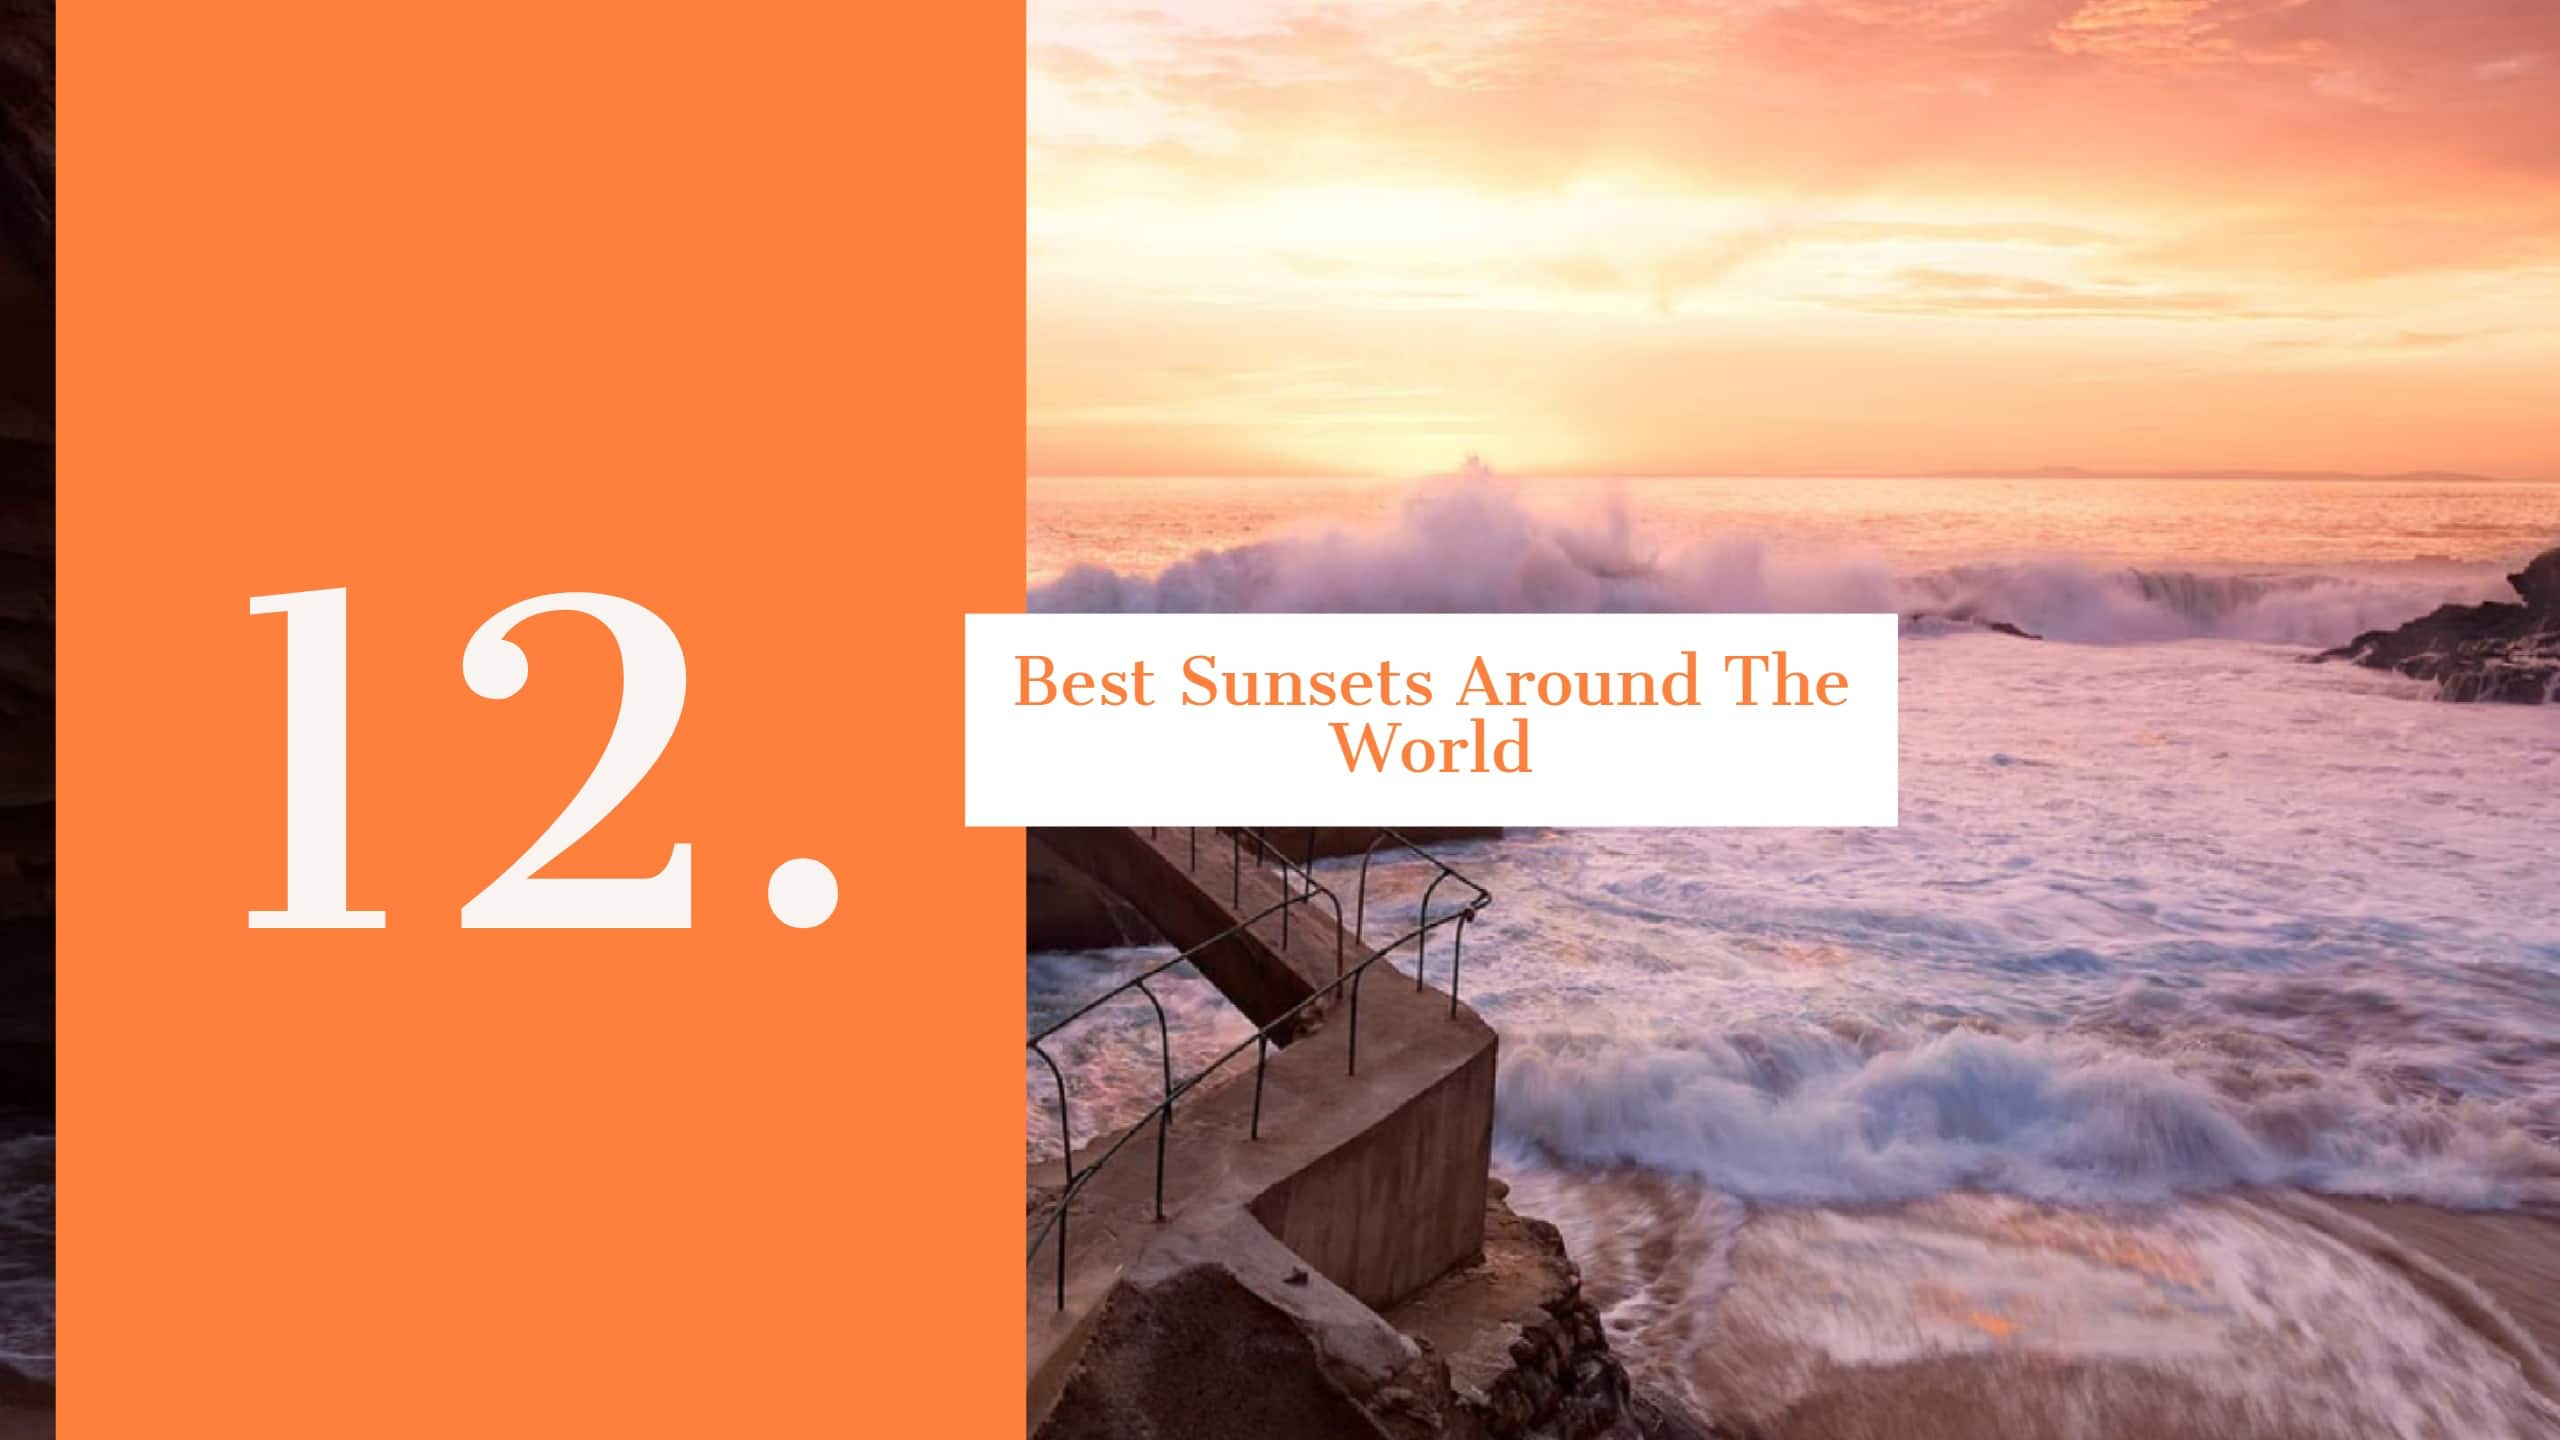 The 12 Best Places To Watch The Sunset Around The World